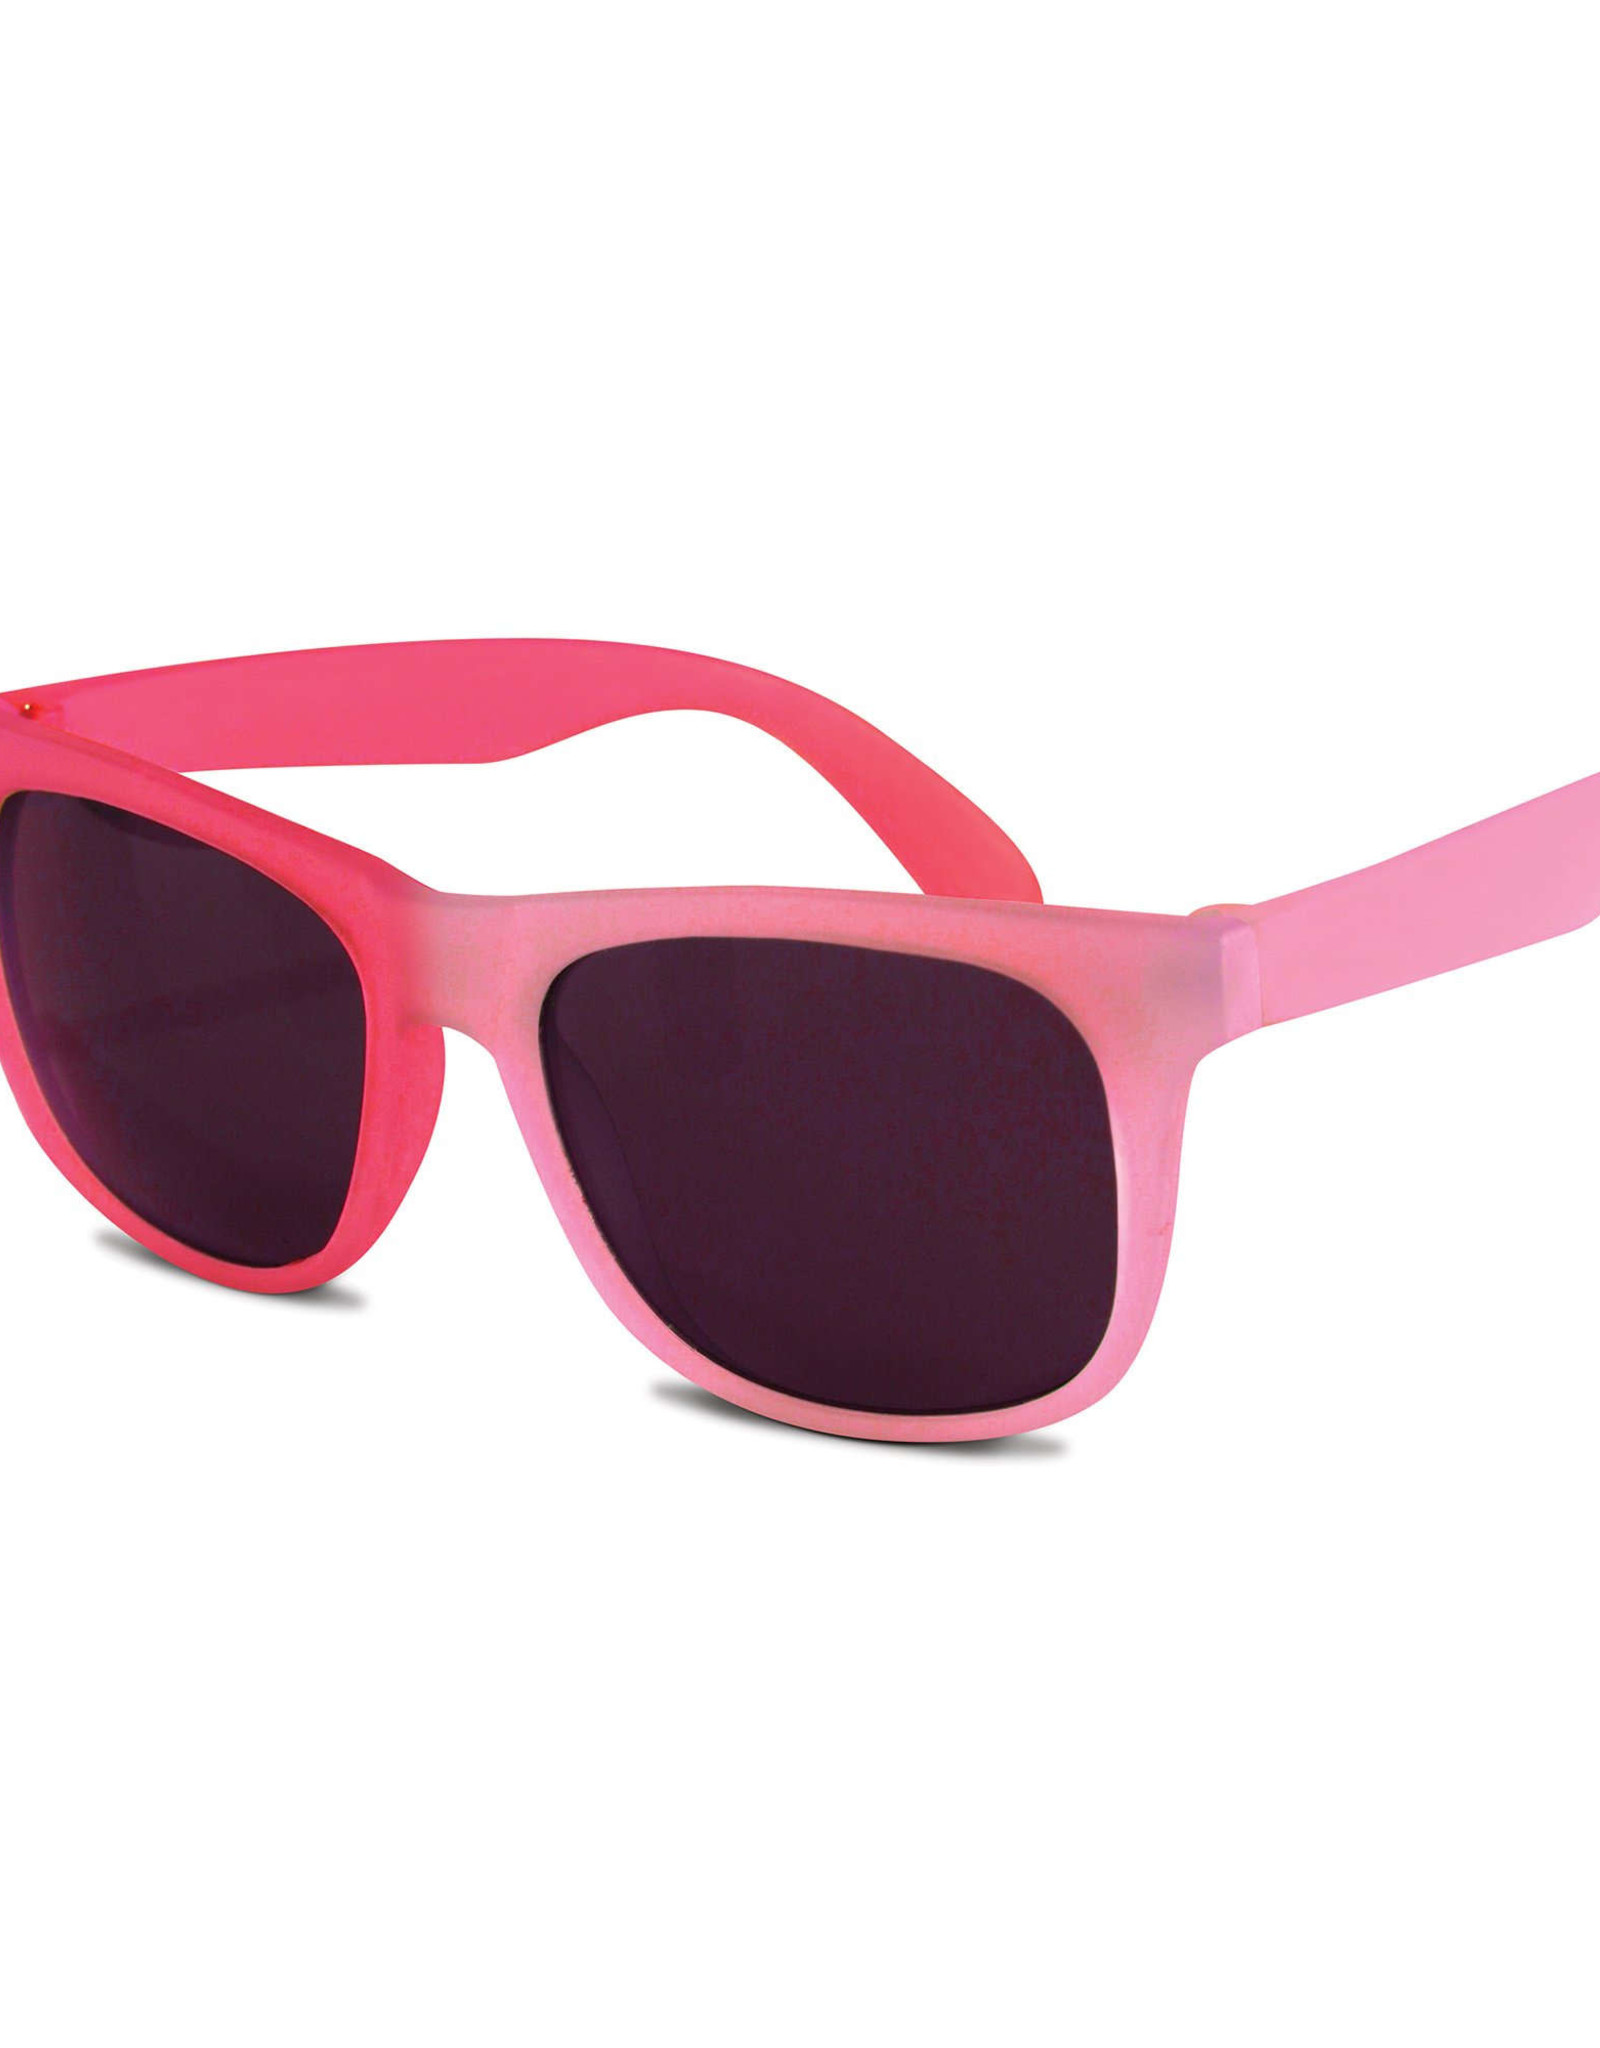 Real Shades Switch Color Changing Sunglasses Light Pink Dark Pink